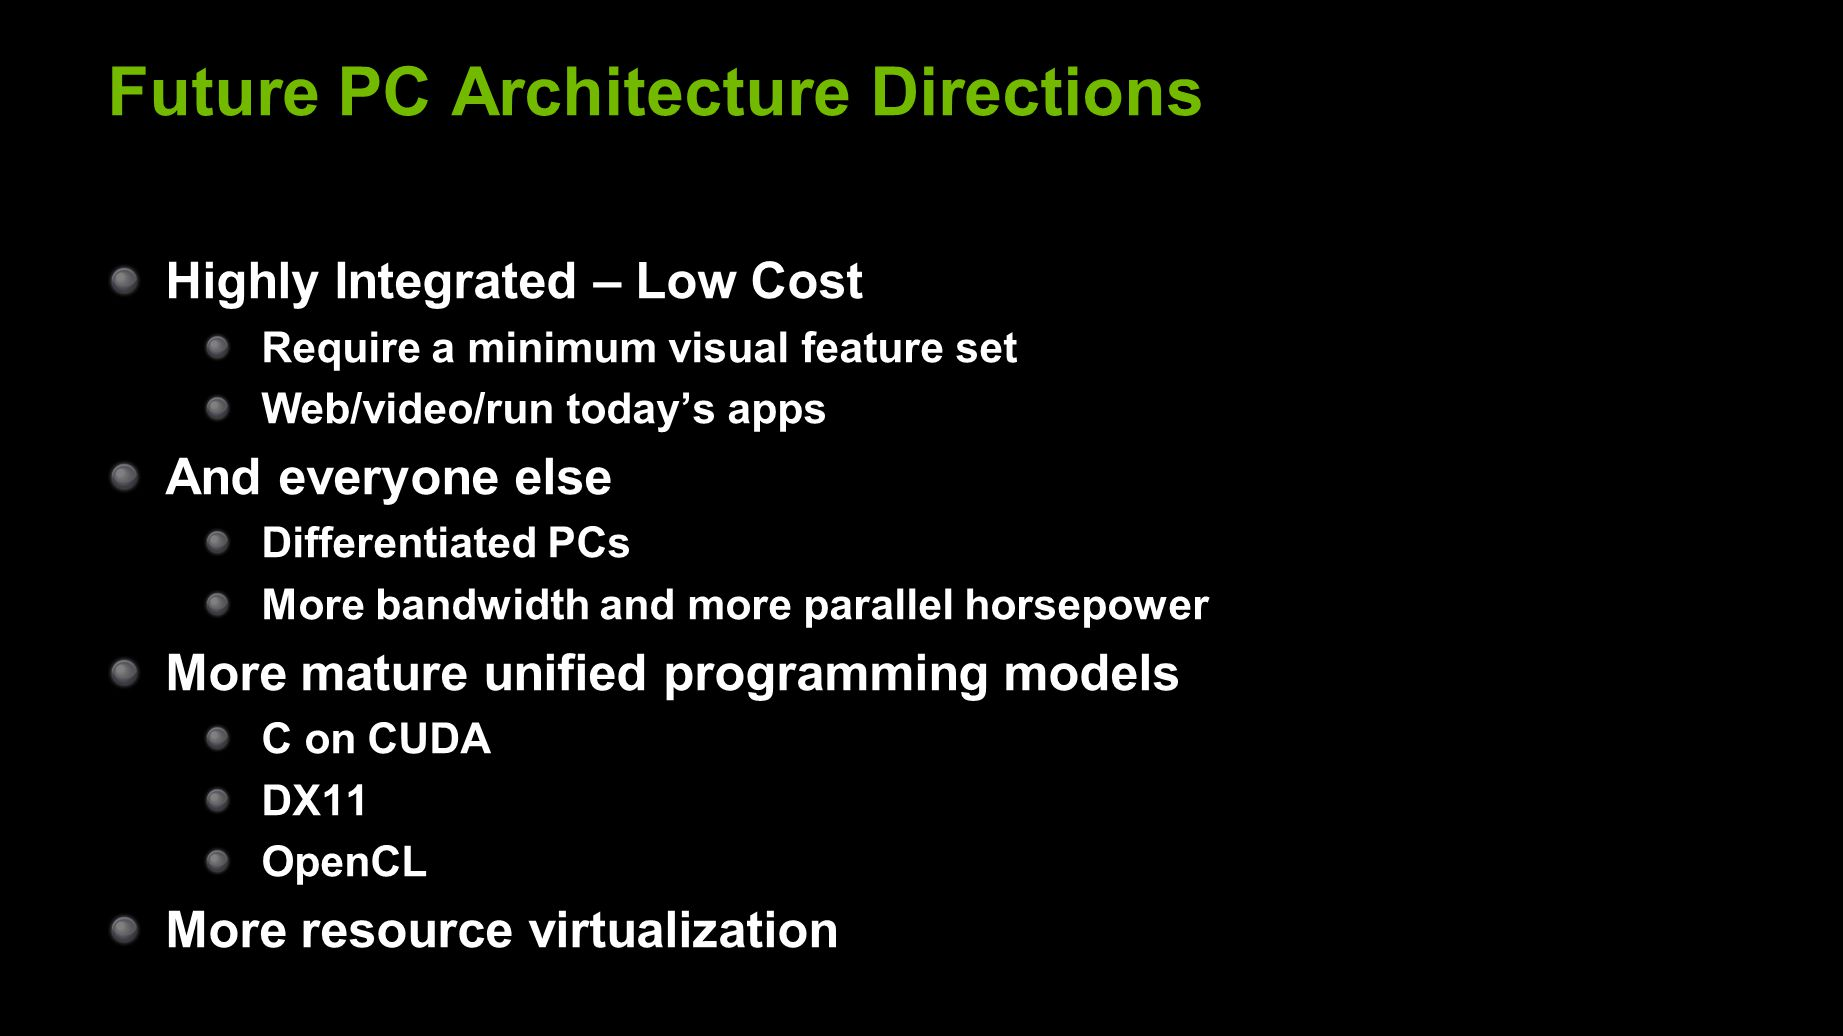 Future PC Architecture Directions Highly Integrated – Low Cost Require a minimum visual feature set Web/video/run today's apps And everyone else Differentiated PCs More bandwidth and more parallel horsepower More mature unified programming models C on CUDA DX11 OpenCL More resource virtualization